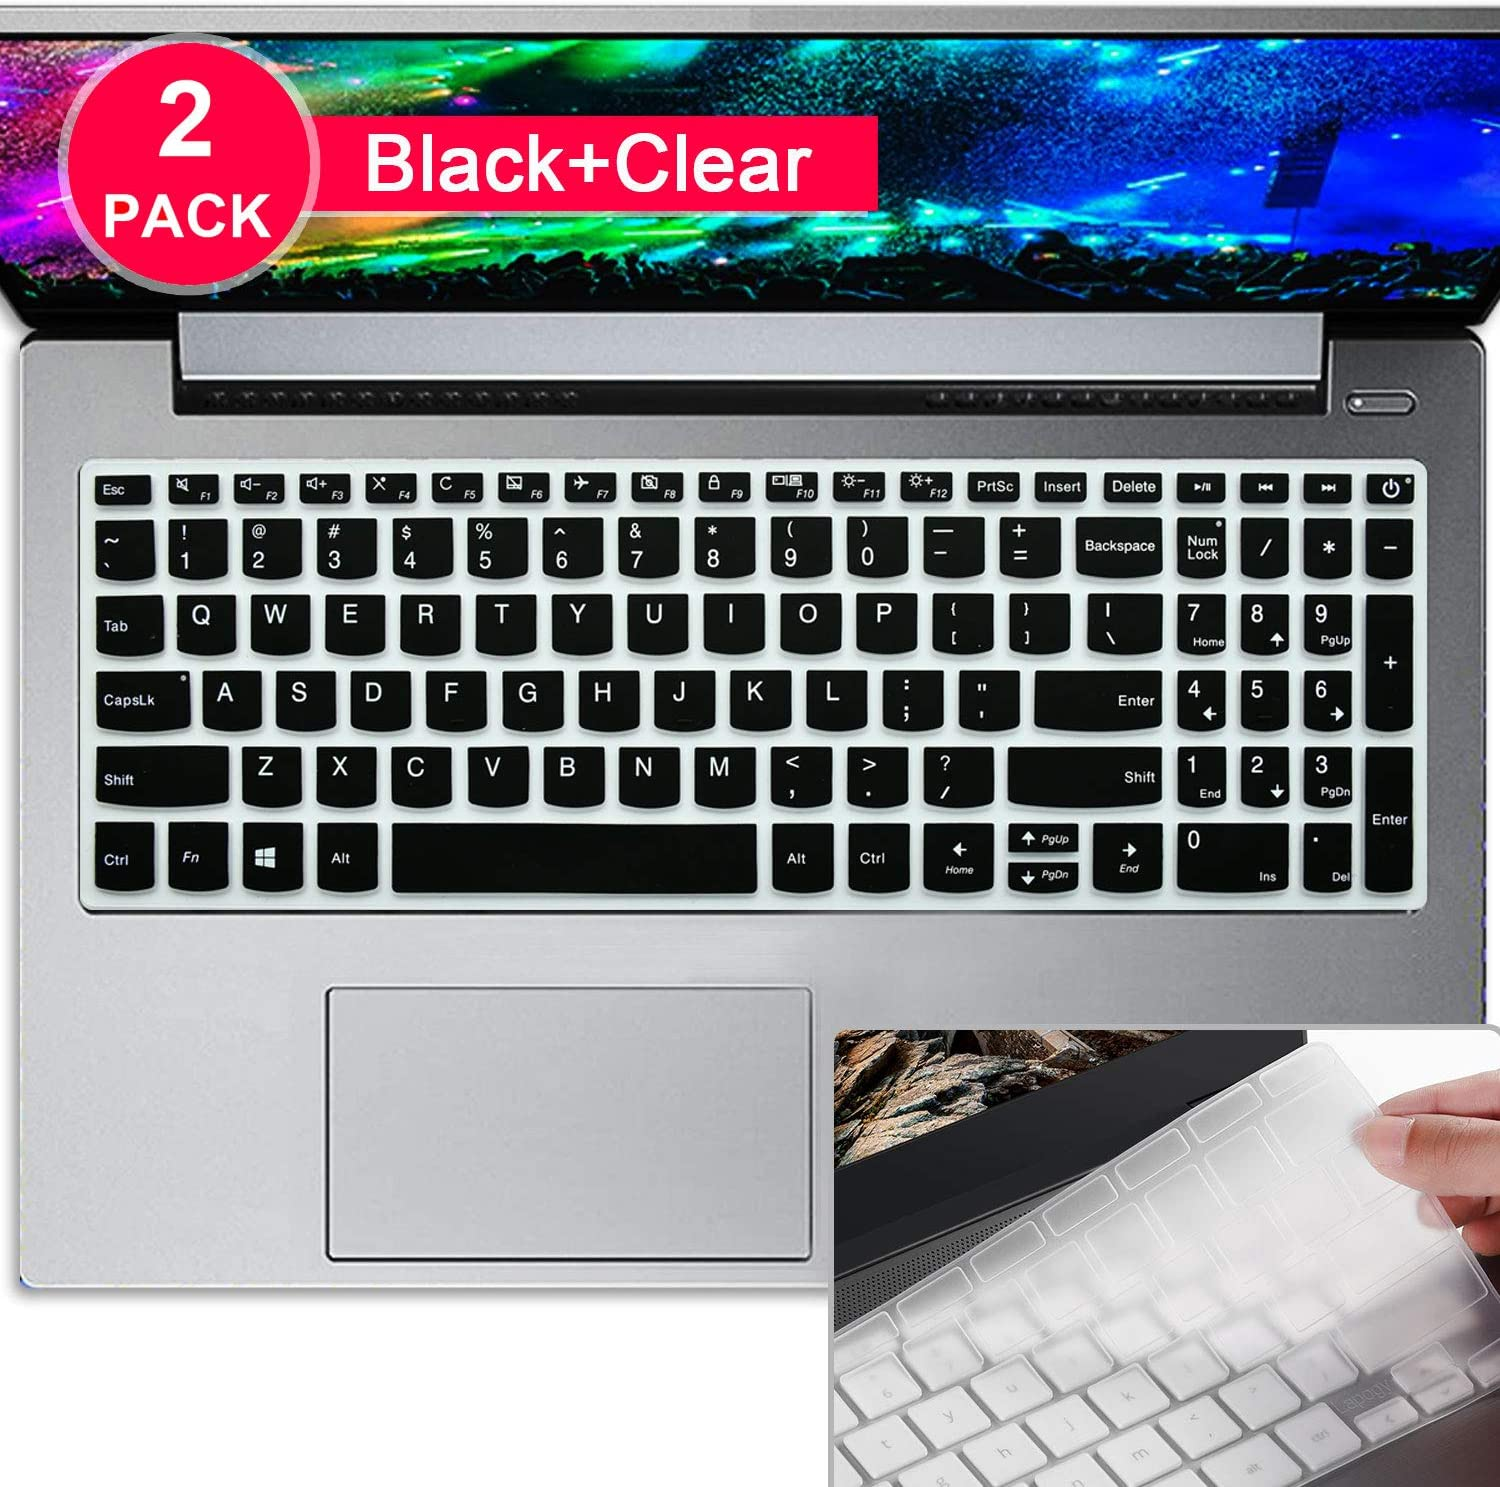 "Lapogy[2Pack]Thin Keyboard Cover Skin For Lenovo IdeaPad 15.6""320 330 330S 340S 520 720S 130 S145 L340 S340/2019 2018 New Lenovo IdeaPad 15.6""/17.3"" IdeaPad 320 330/15.6""Lenovo V330 V130,Black+Clear"